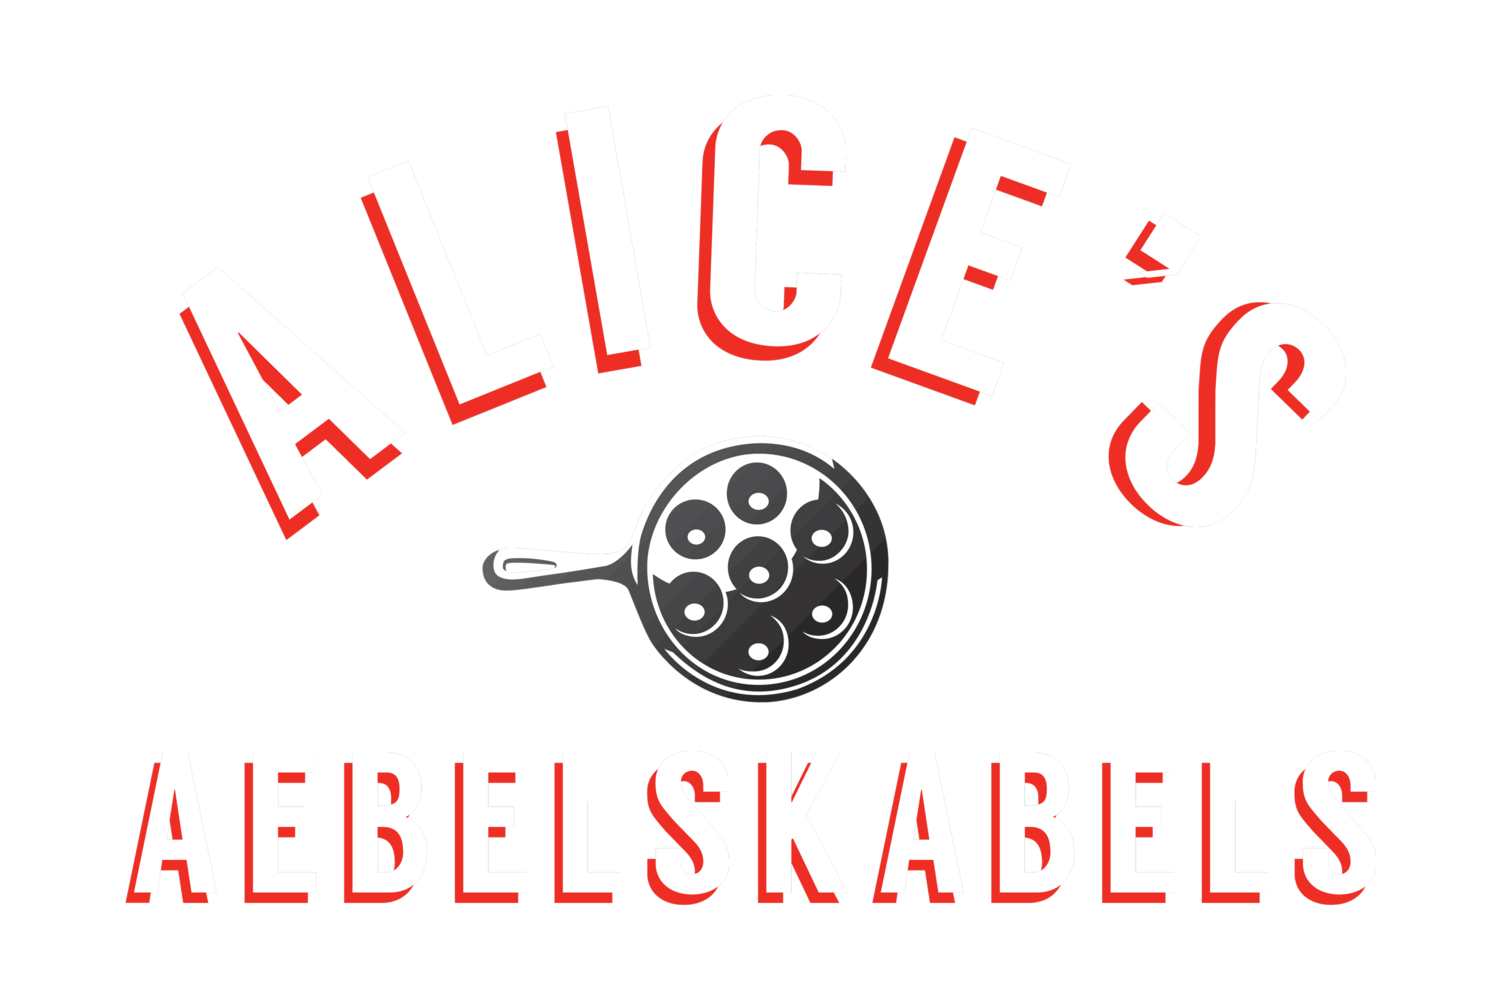 Alice's Aebelskabels